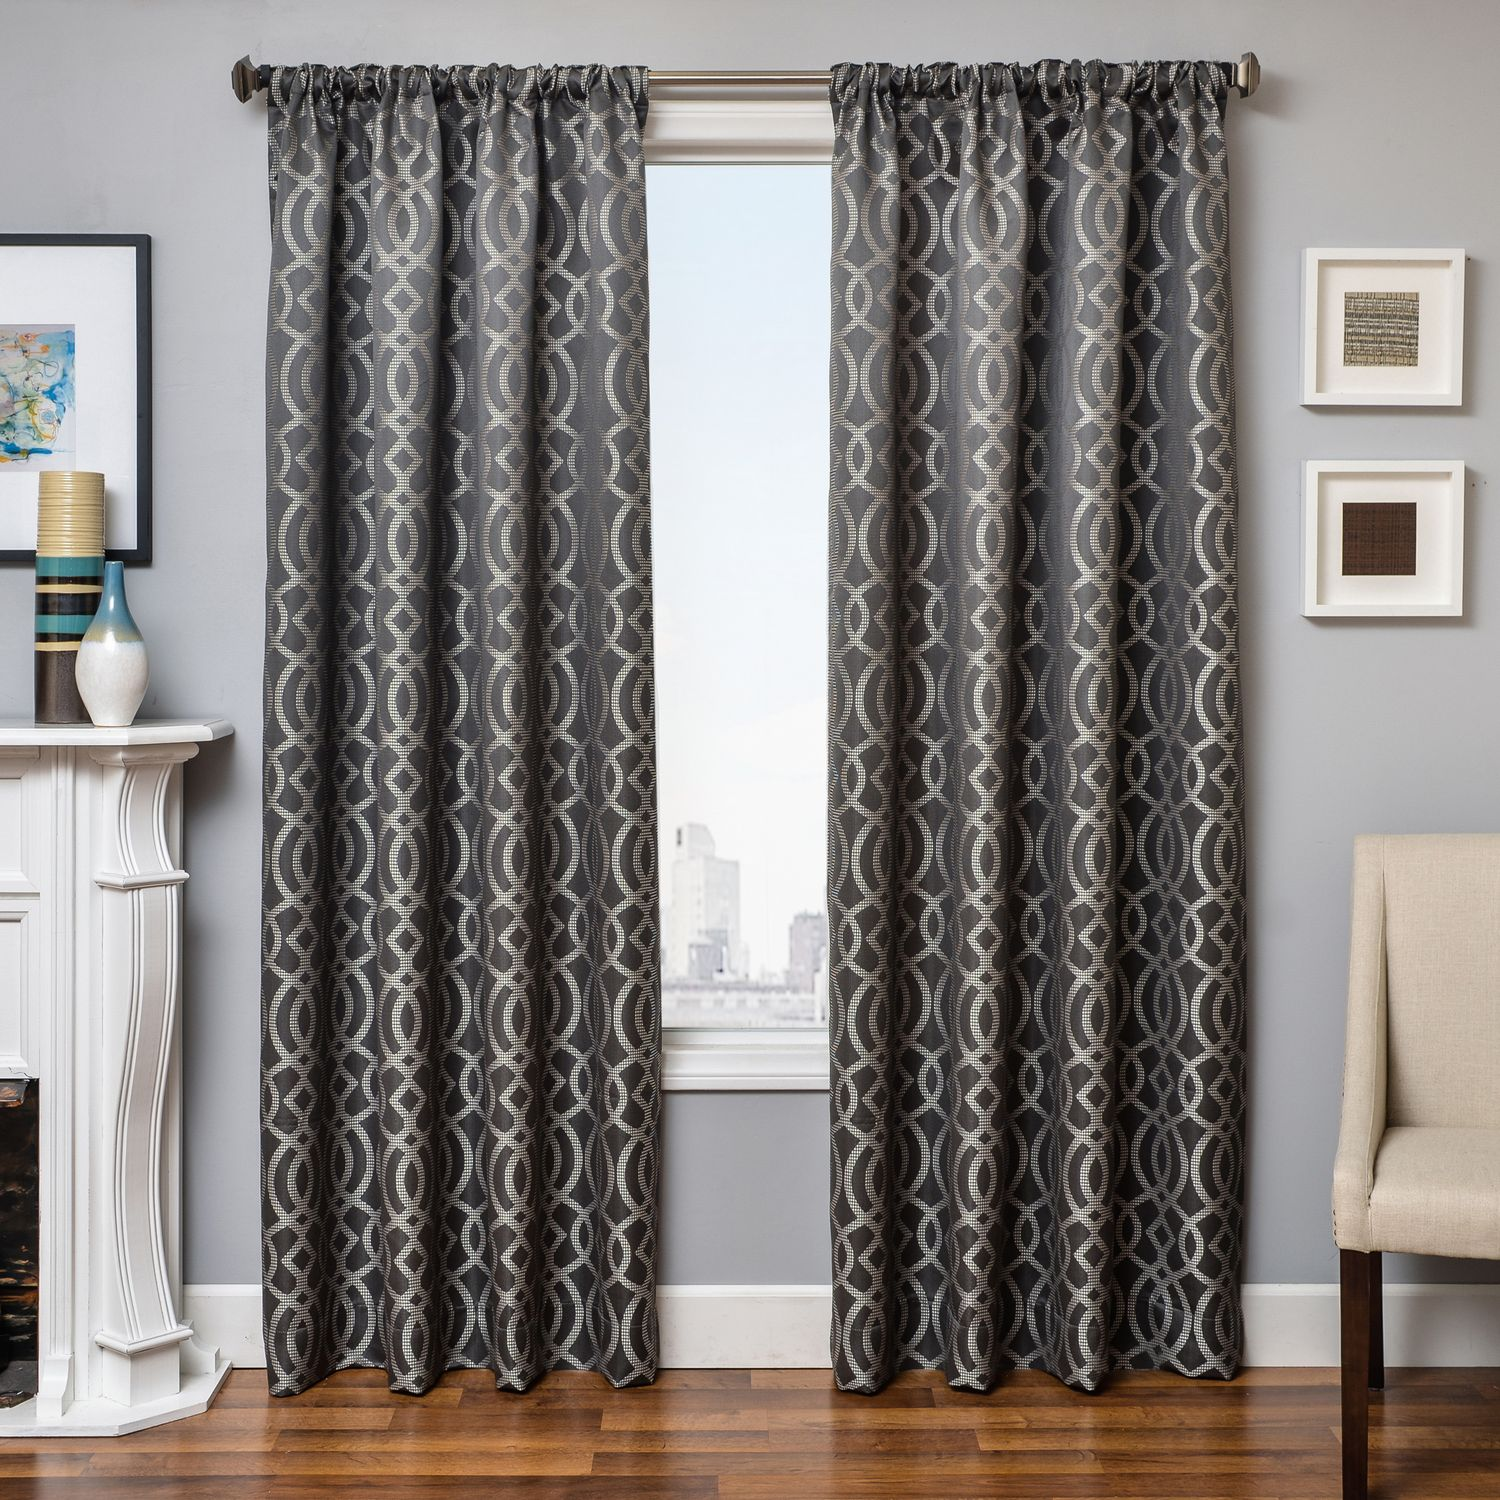 UUU Softline Home Fashions Drapery Exeter Panel